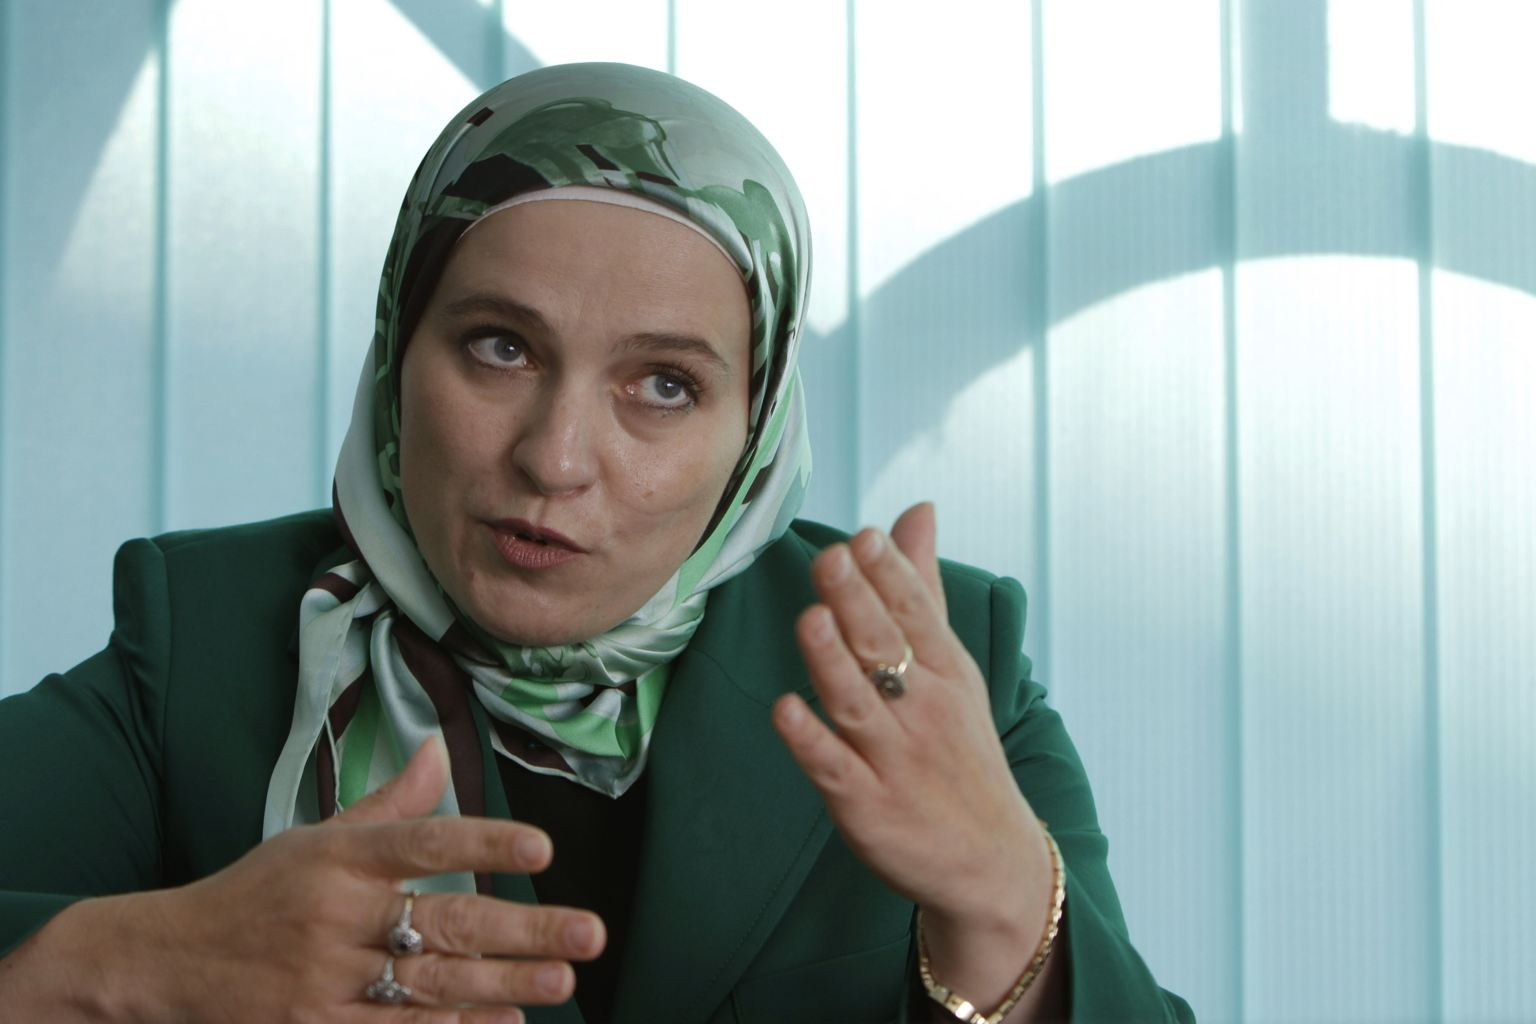 Muslim Woman Hijabi Mayor